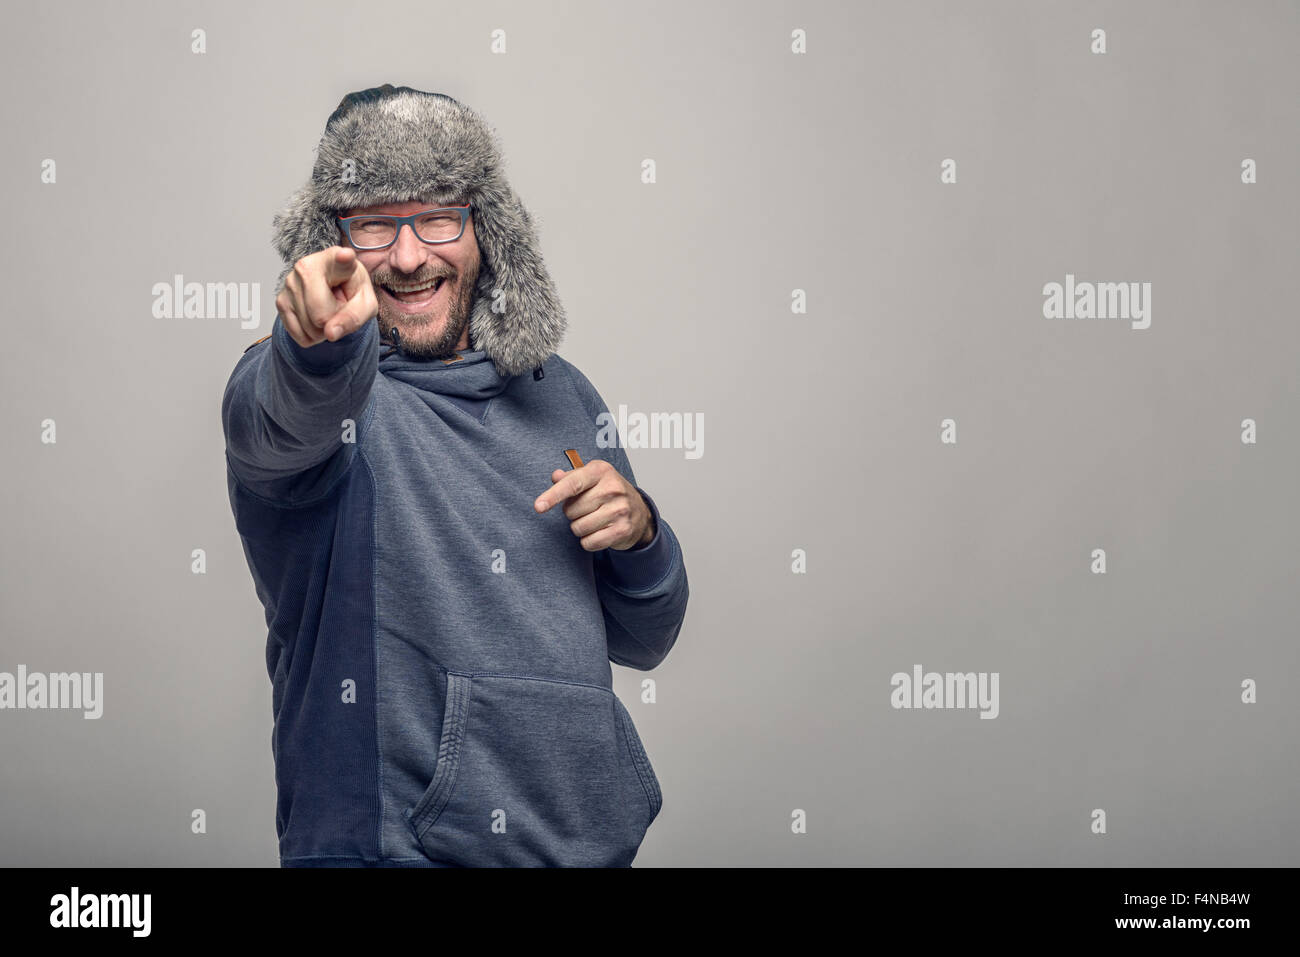 Laughing jovial man wearing glasses and a furry winter hat standing pointing at the camera with a playful expression, over grey Stock Photo